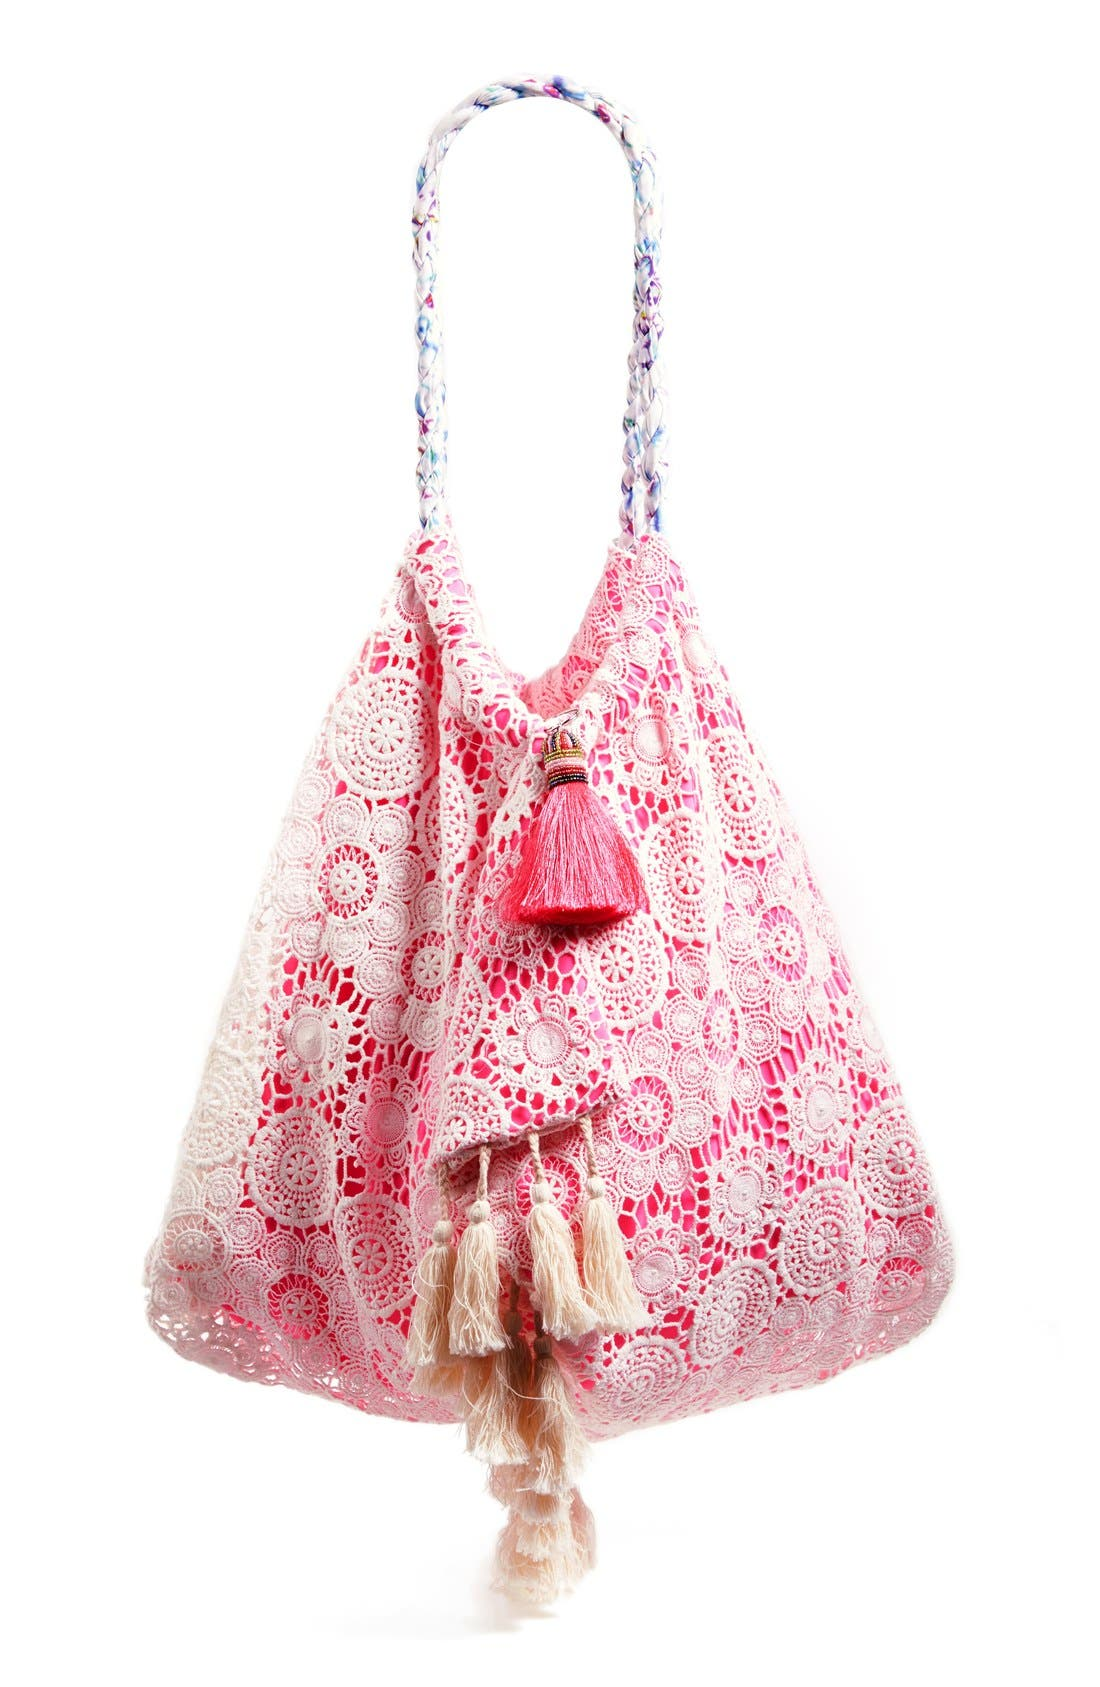 6 SHORE ROAD BY POOJA 'Sunset' Beach Bag, Main, color, 650